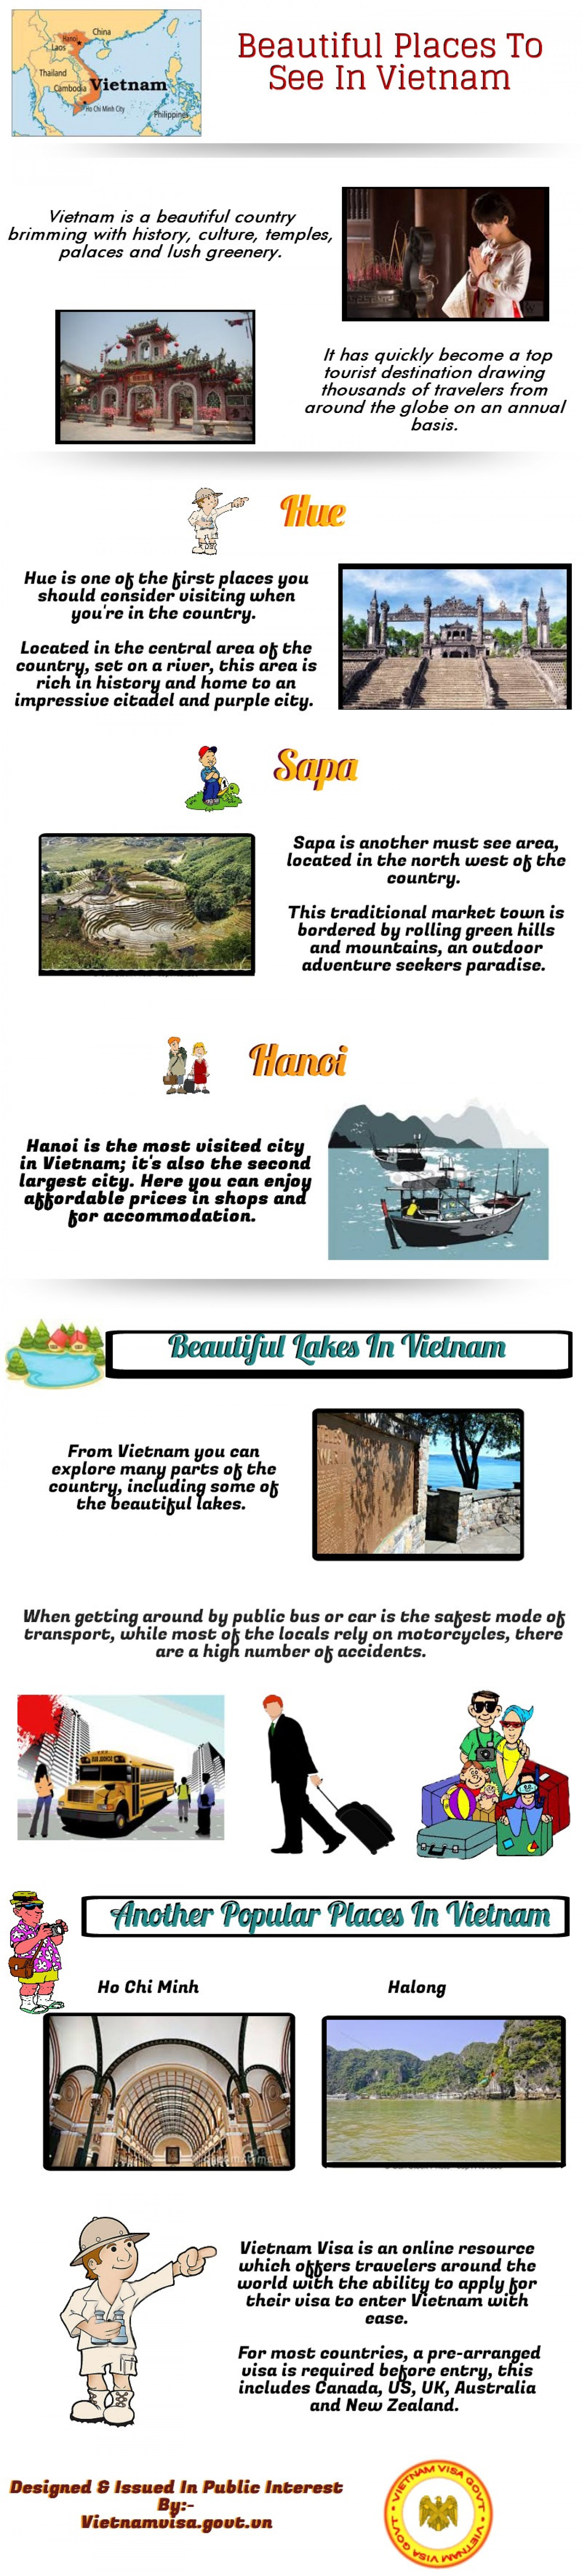 Beautiful Places To See In Vietnam Infographic